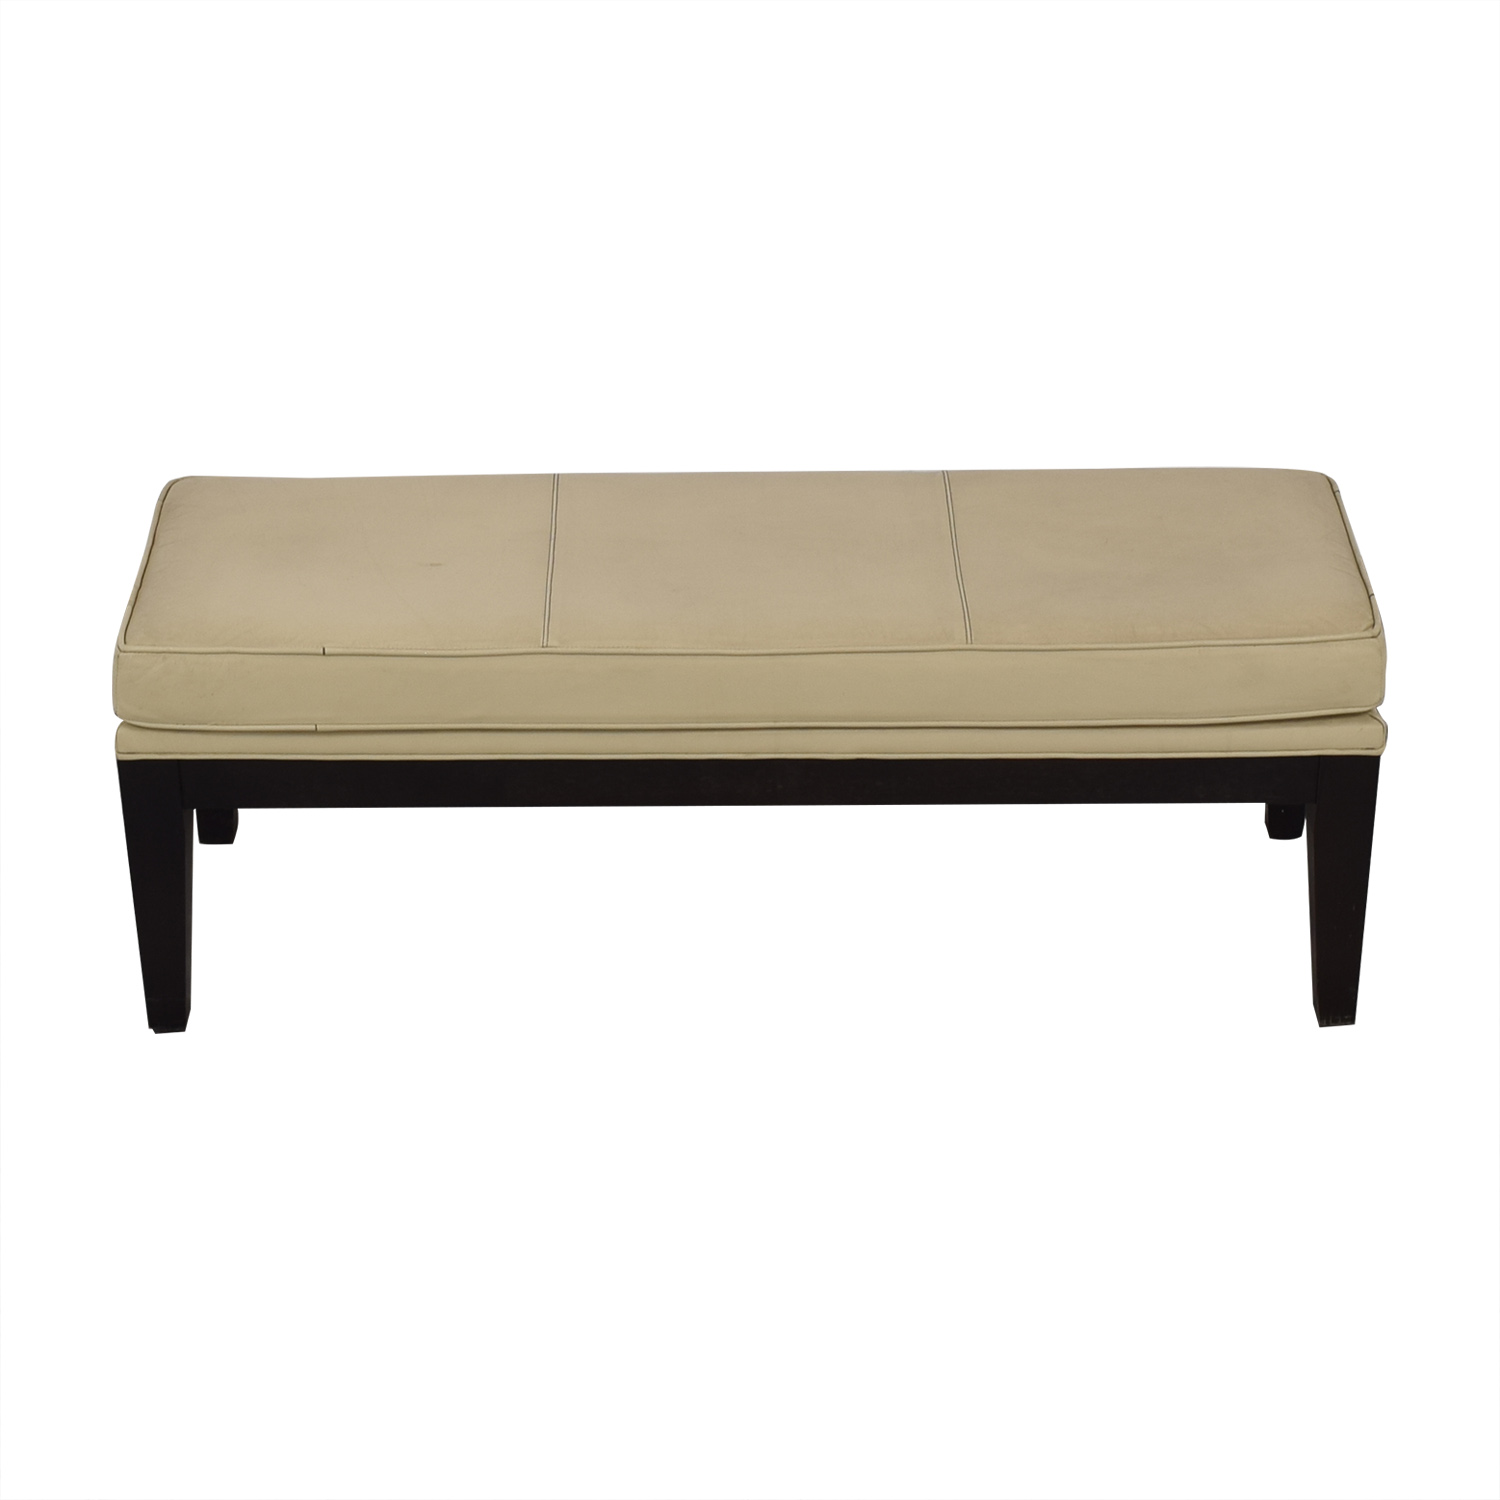 Neiman Marcus Neiman Marcus Upholstered Bench beige & dark brown